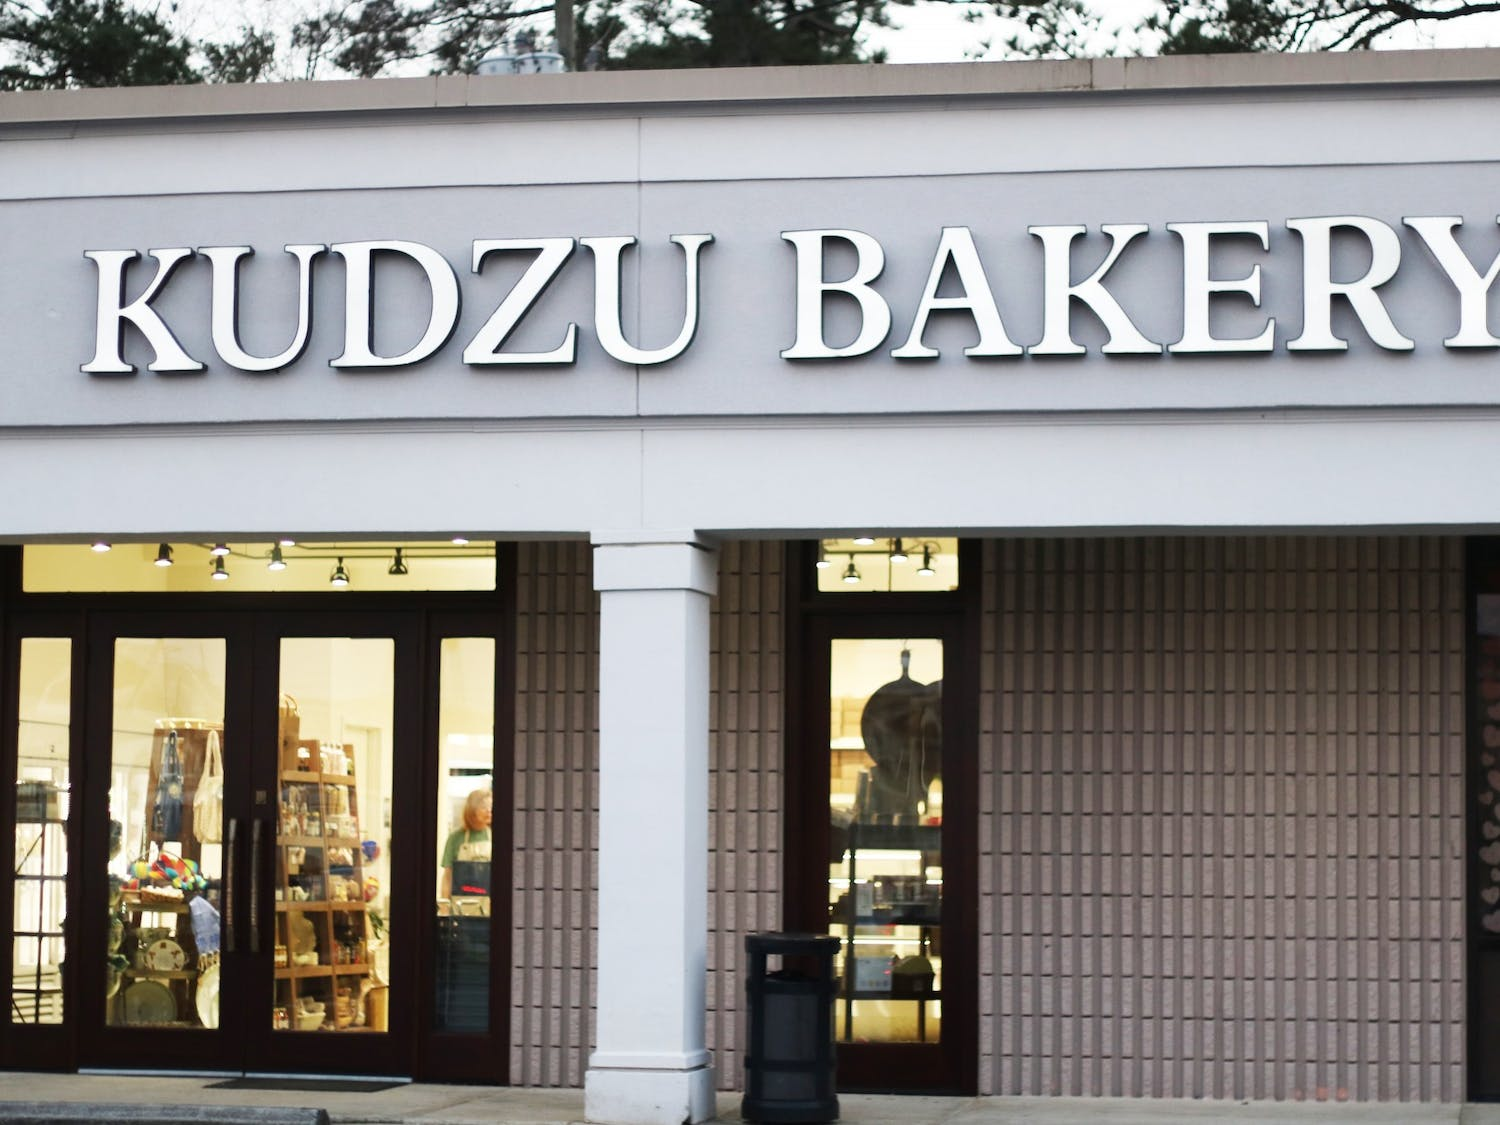 Kudzu Bakery is a small bakery and market chain within South Carolina. The bakery makes a variety of items ranging from breakfast items, desserts and breads.